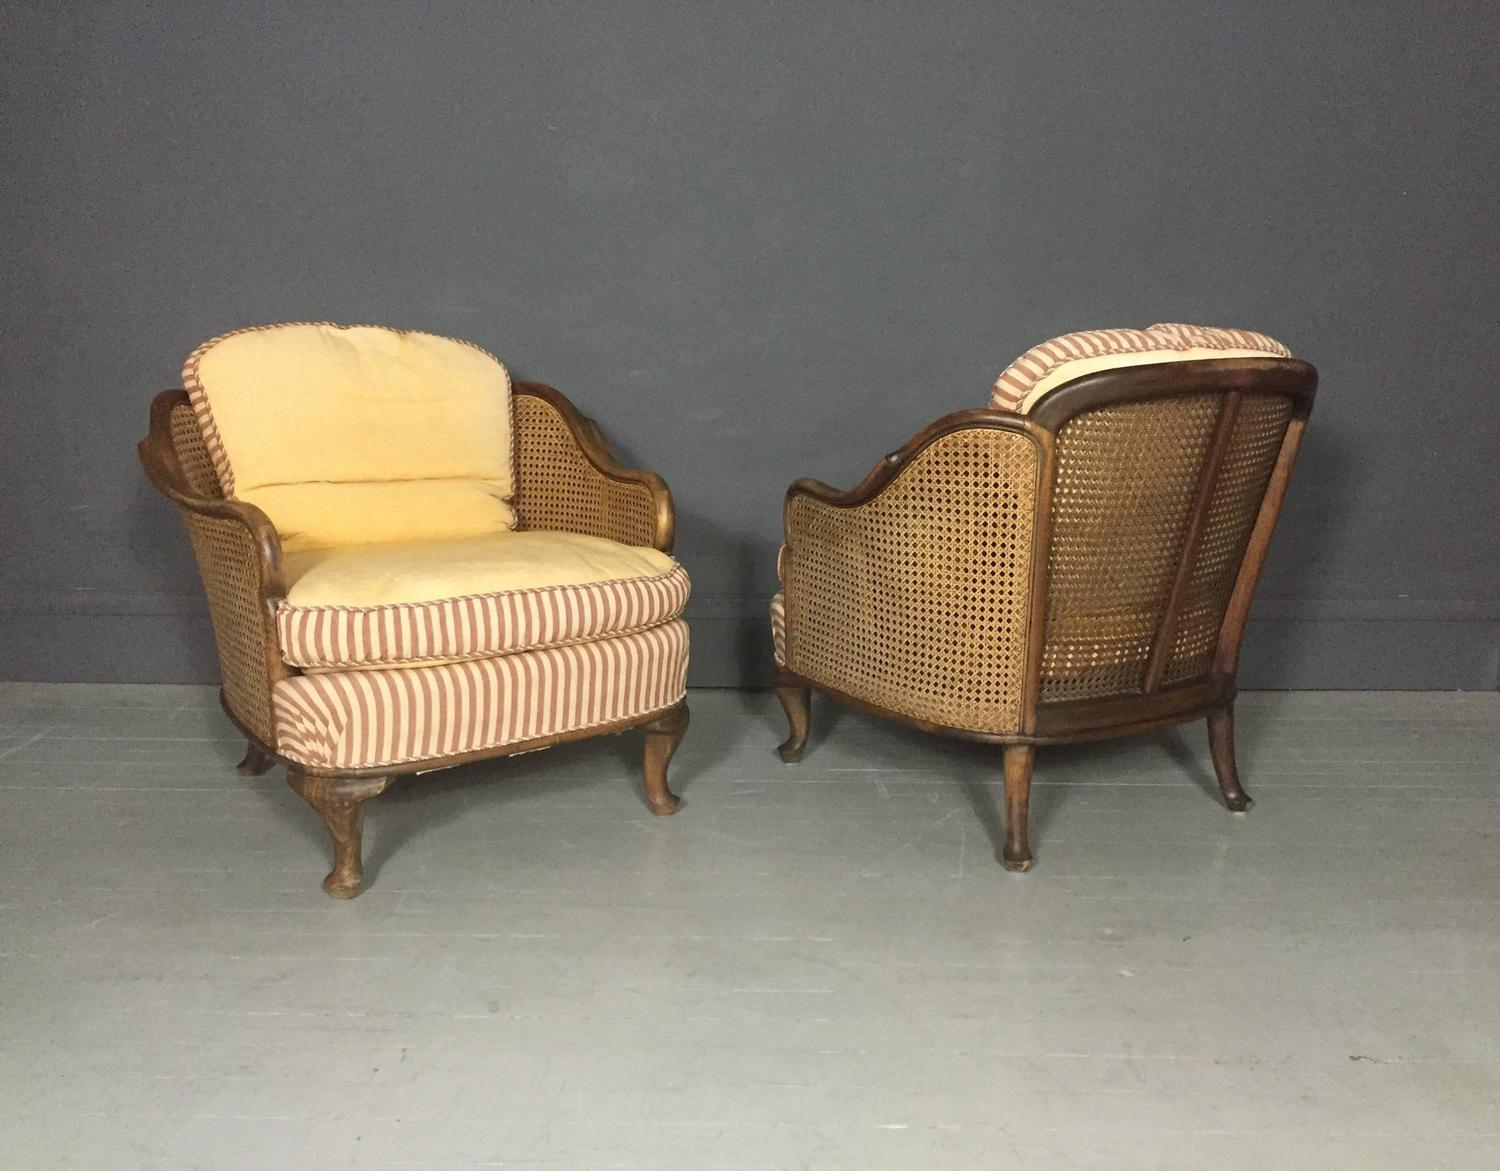 1930 cane back sofa seat foam in delhi pair of bergere tub chairs walnut and sweden 1930s